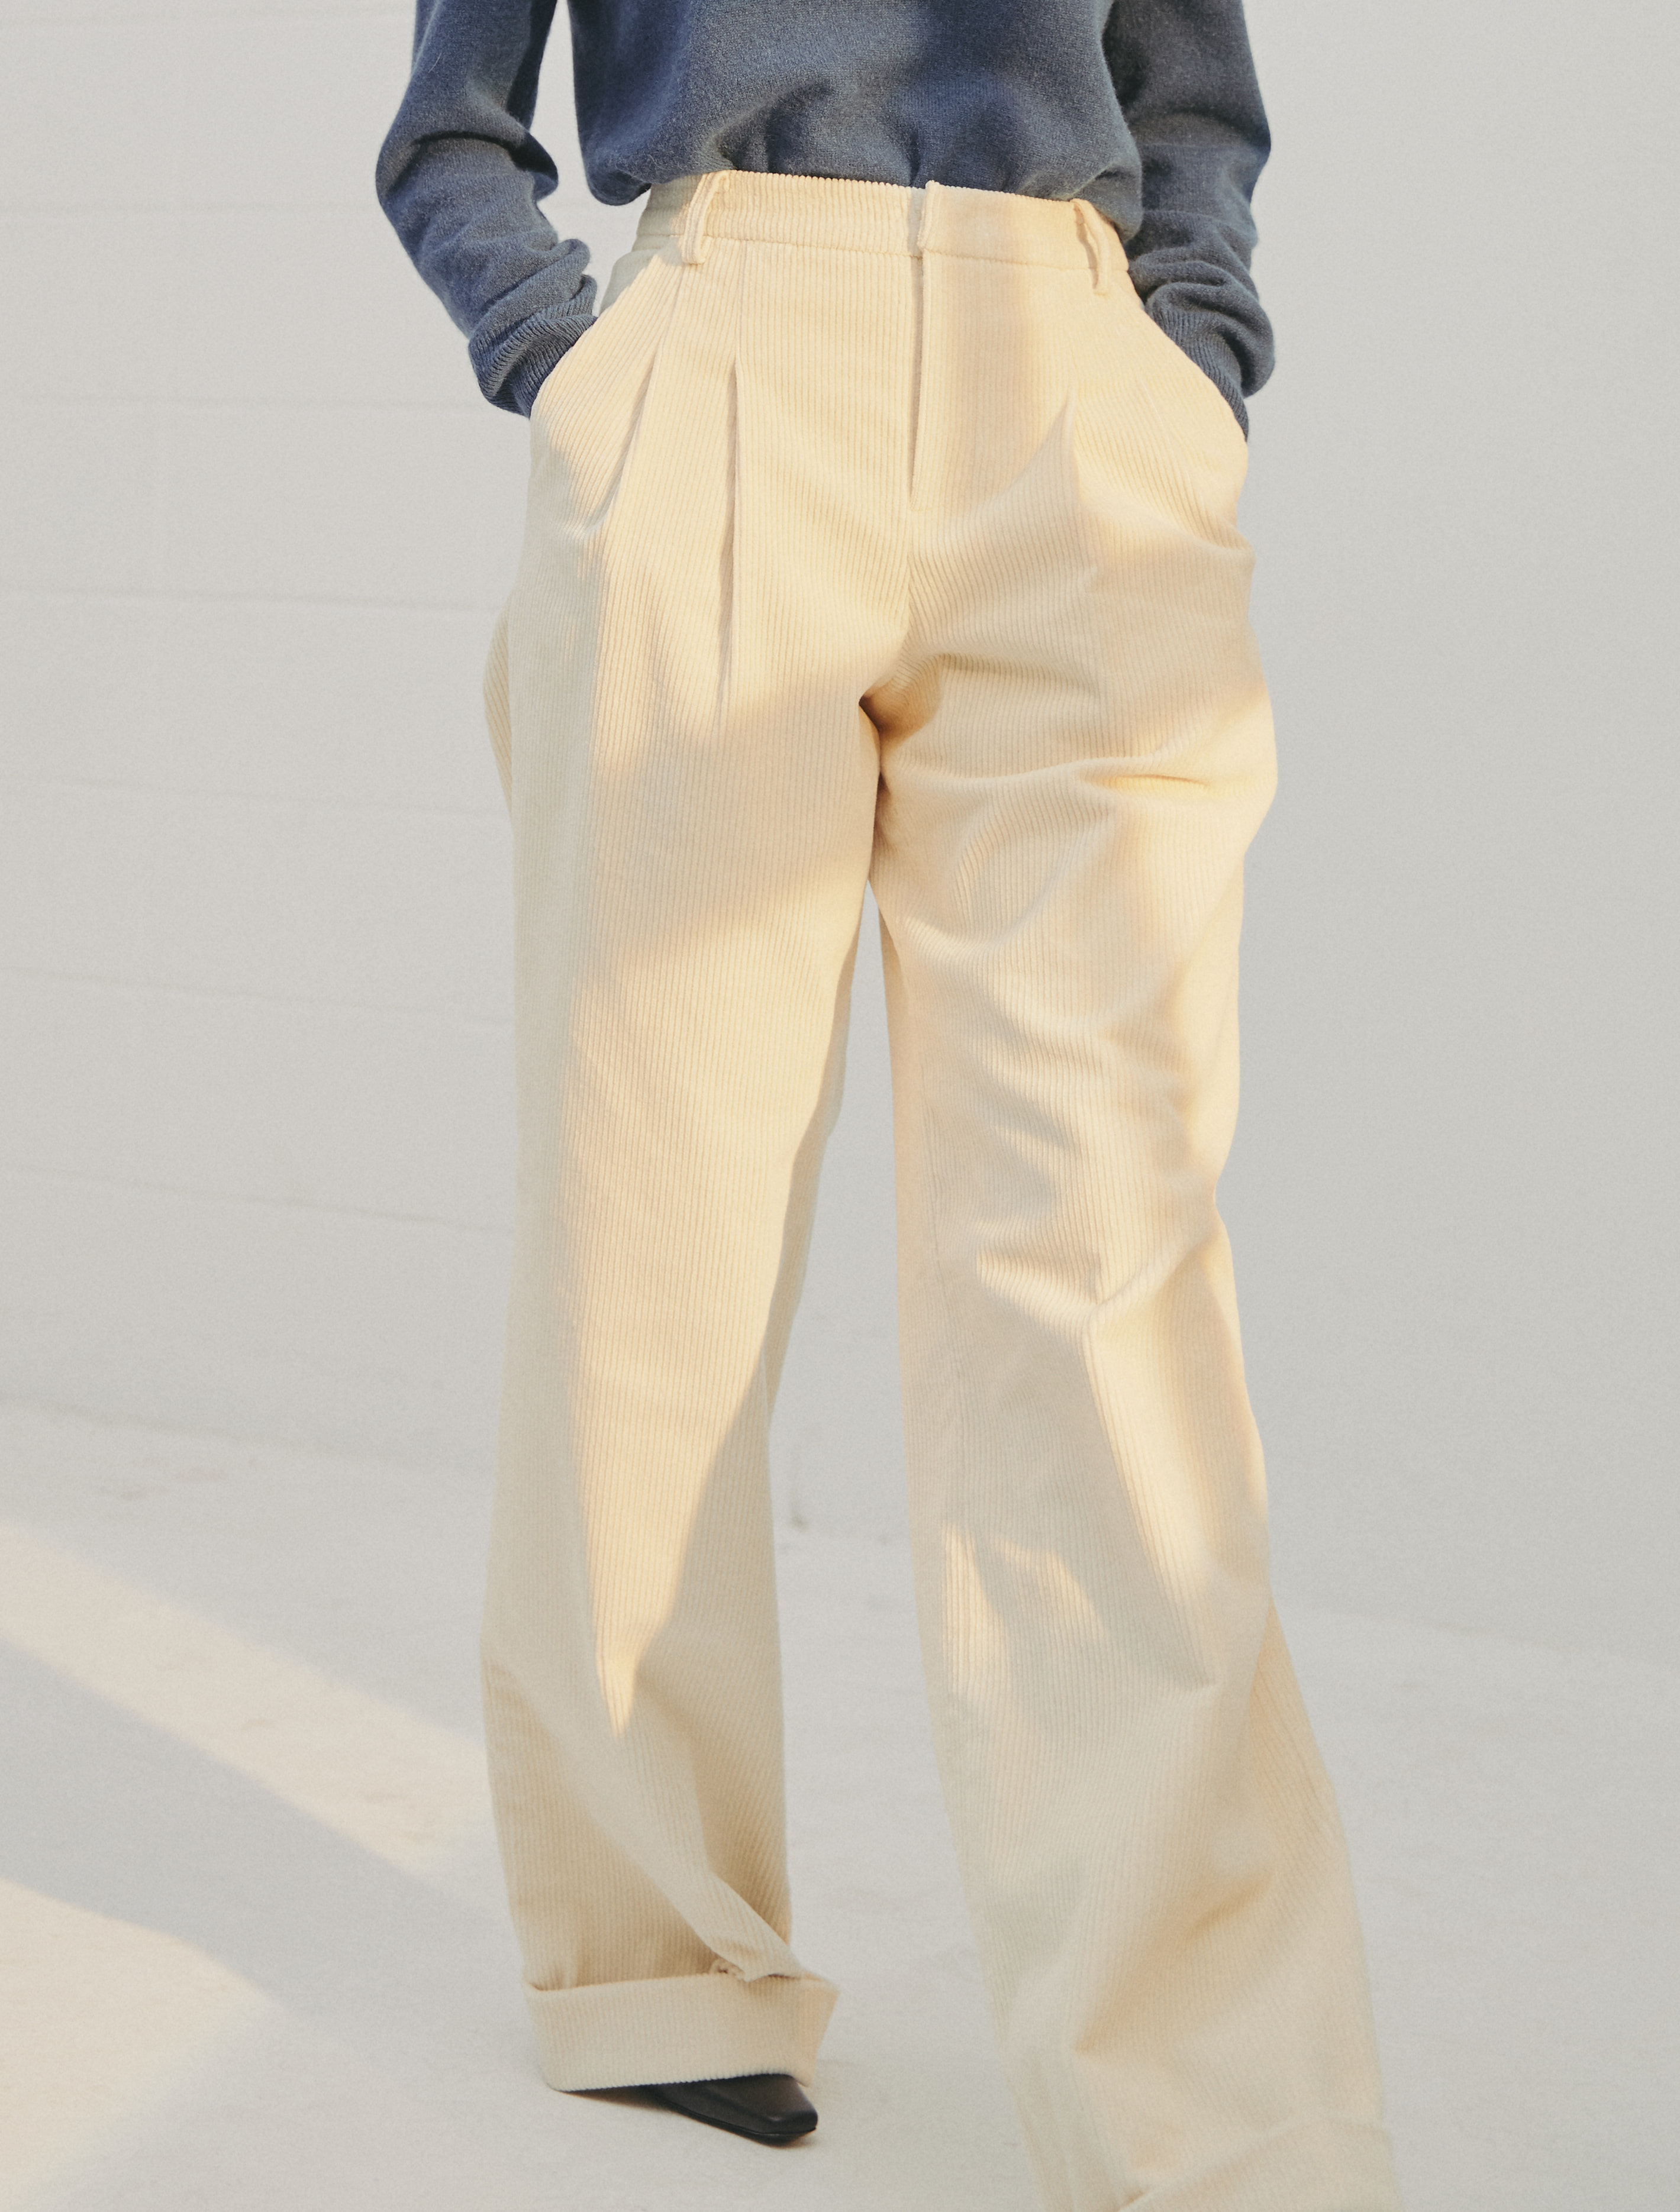 2nd REORDER · Cotton Corduroy Trousers (Ivory)